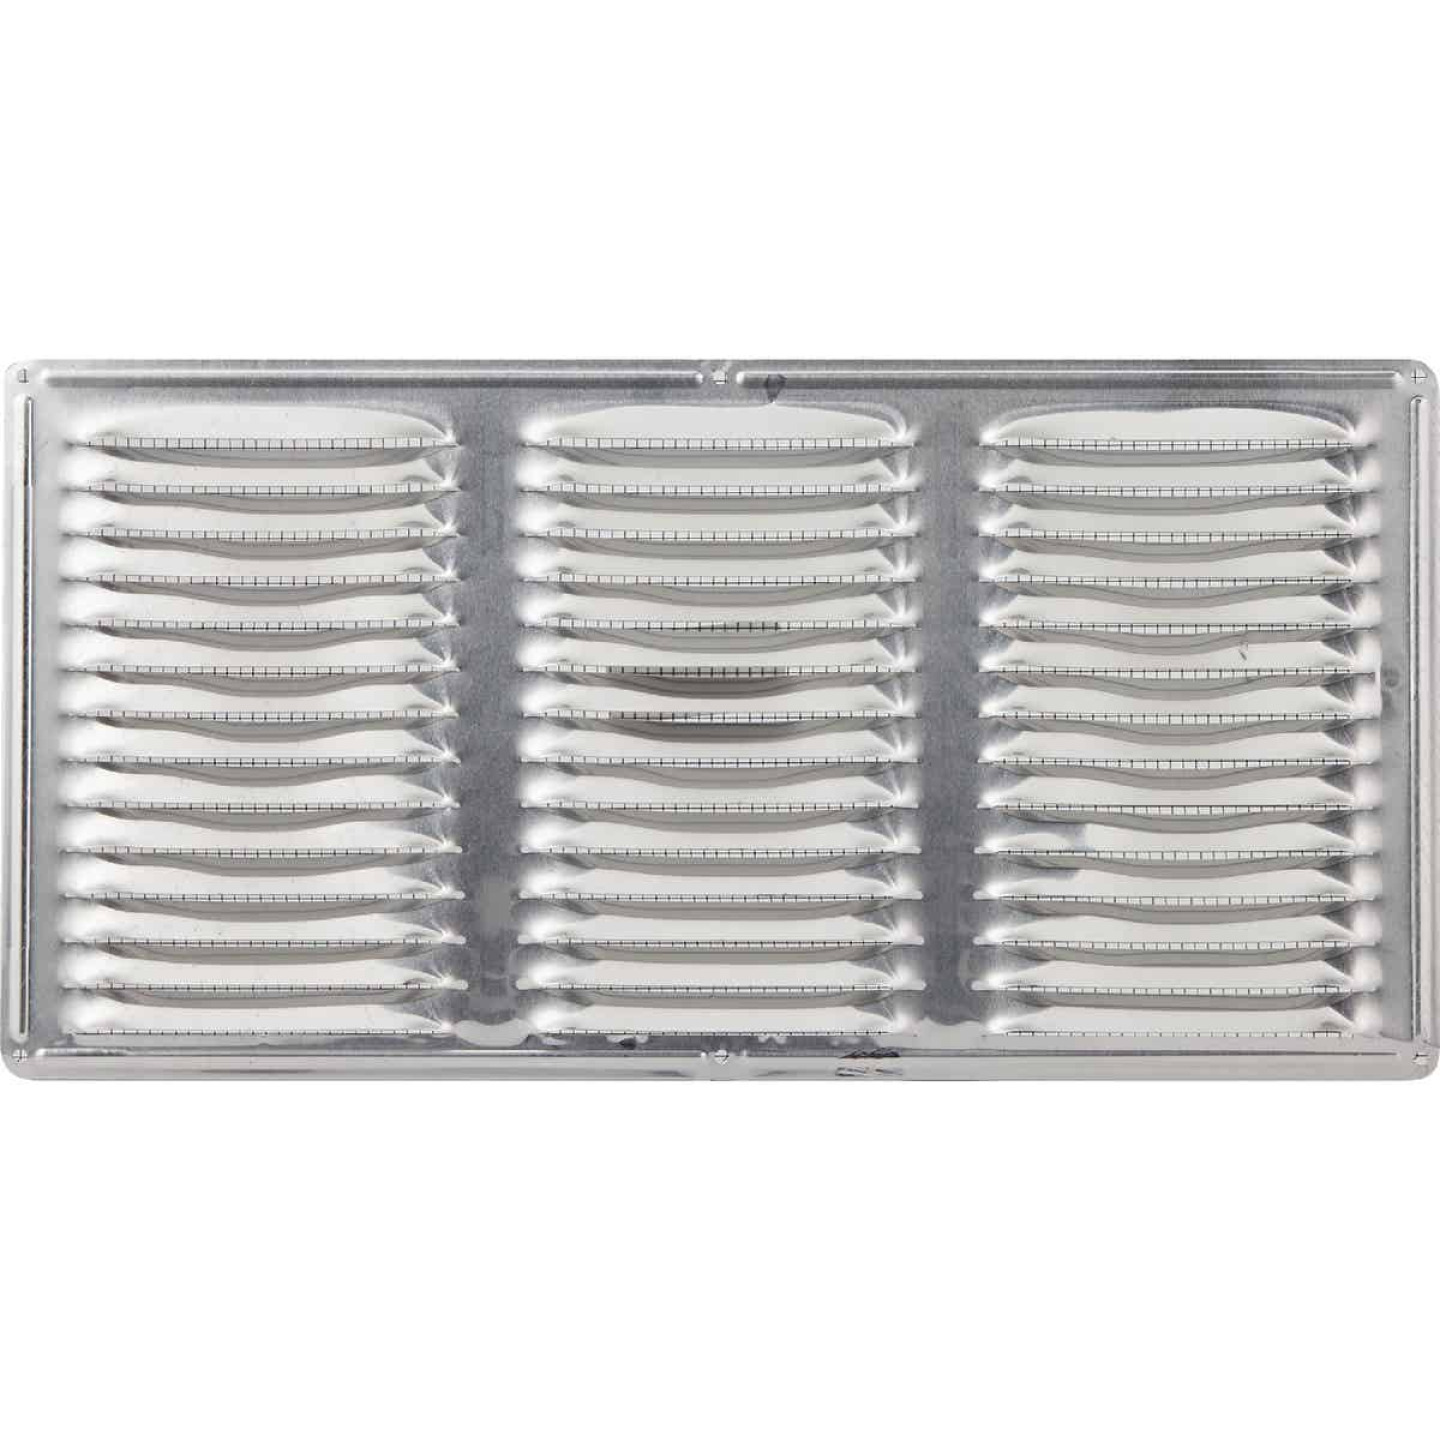 Air Vent 16 In. x 8 In. Mill Aluminum Under Eave Vent Image 2